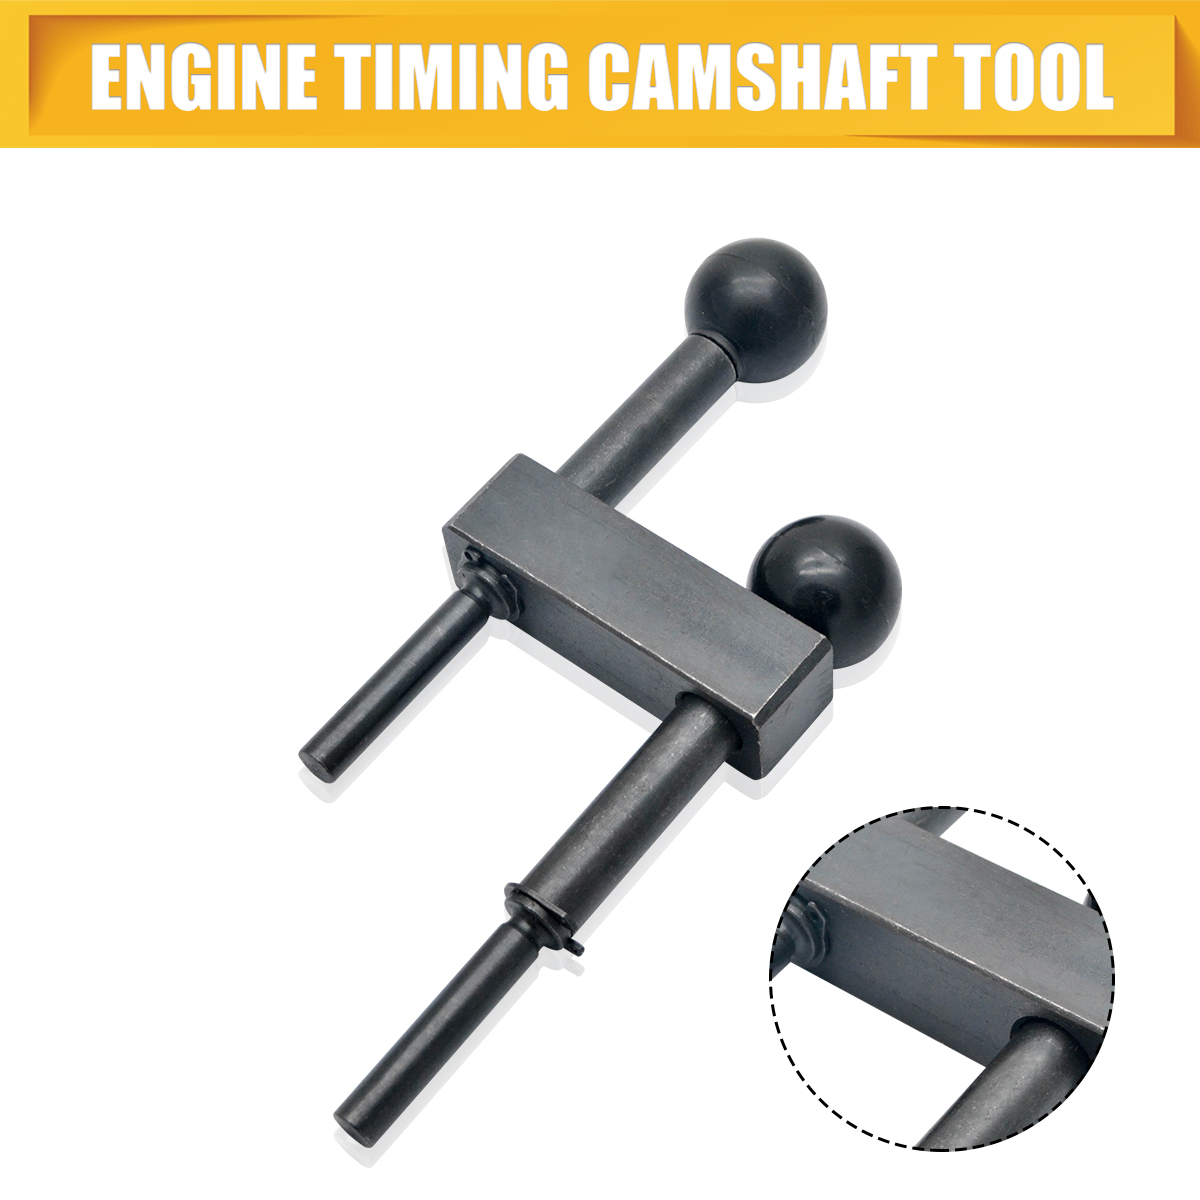 Car Engine Timing Belt Camshaft Lock tool Repair Tool For Volkswagen Polo Golf Lupo 1.4 1.6 16V Twin CamCar Engine Timing Belt Camshaft Lock tool Repair Tool For Volkswagen Polo Golf Lupo 1.4 1.6 16V Twin Cam